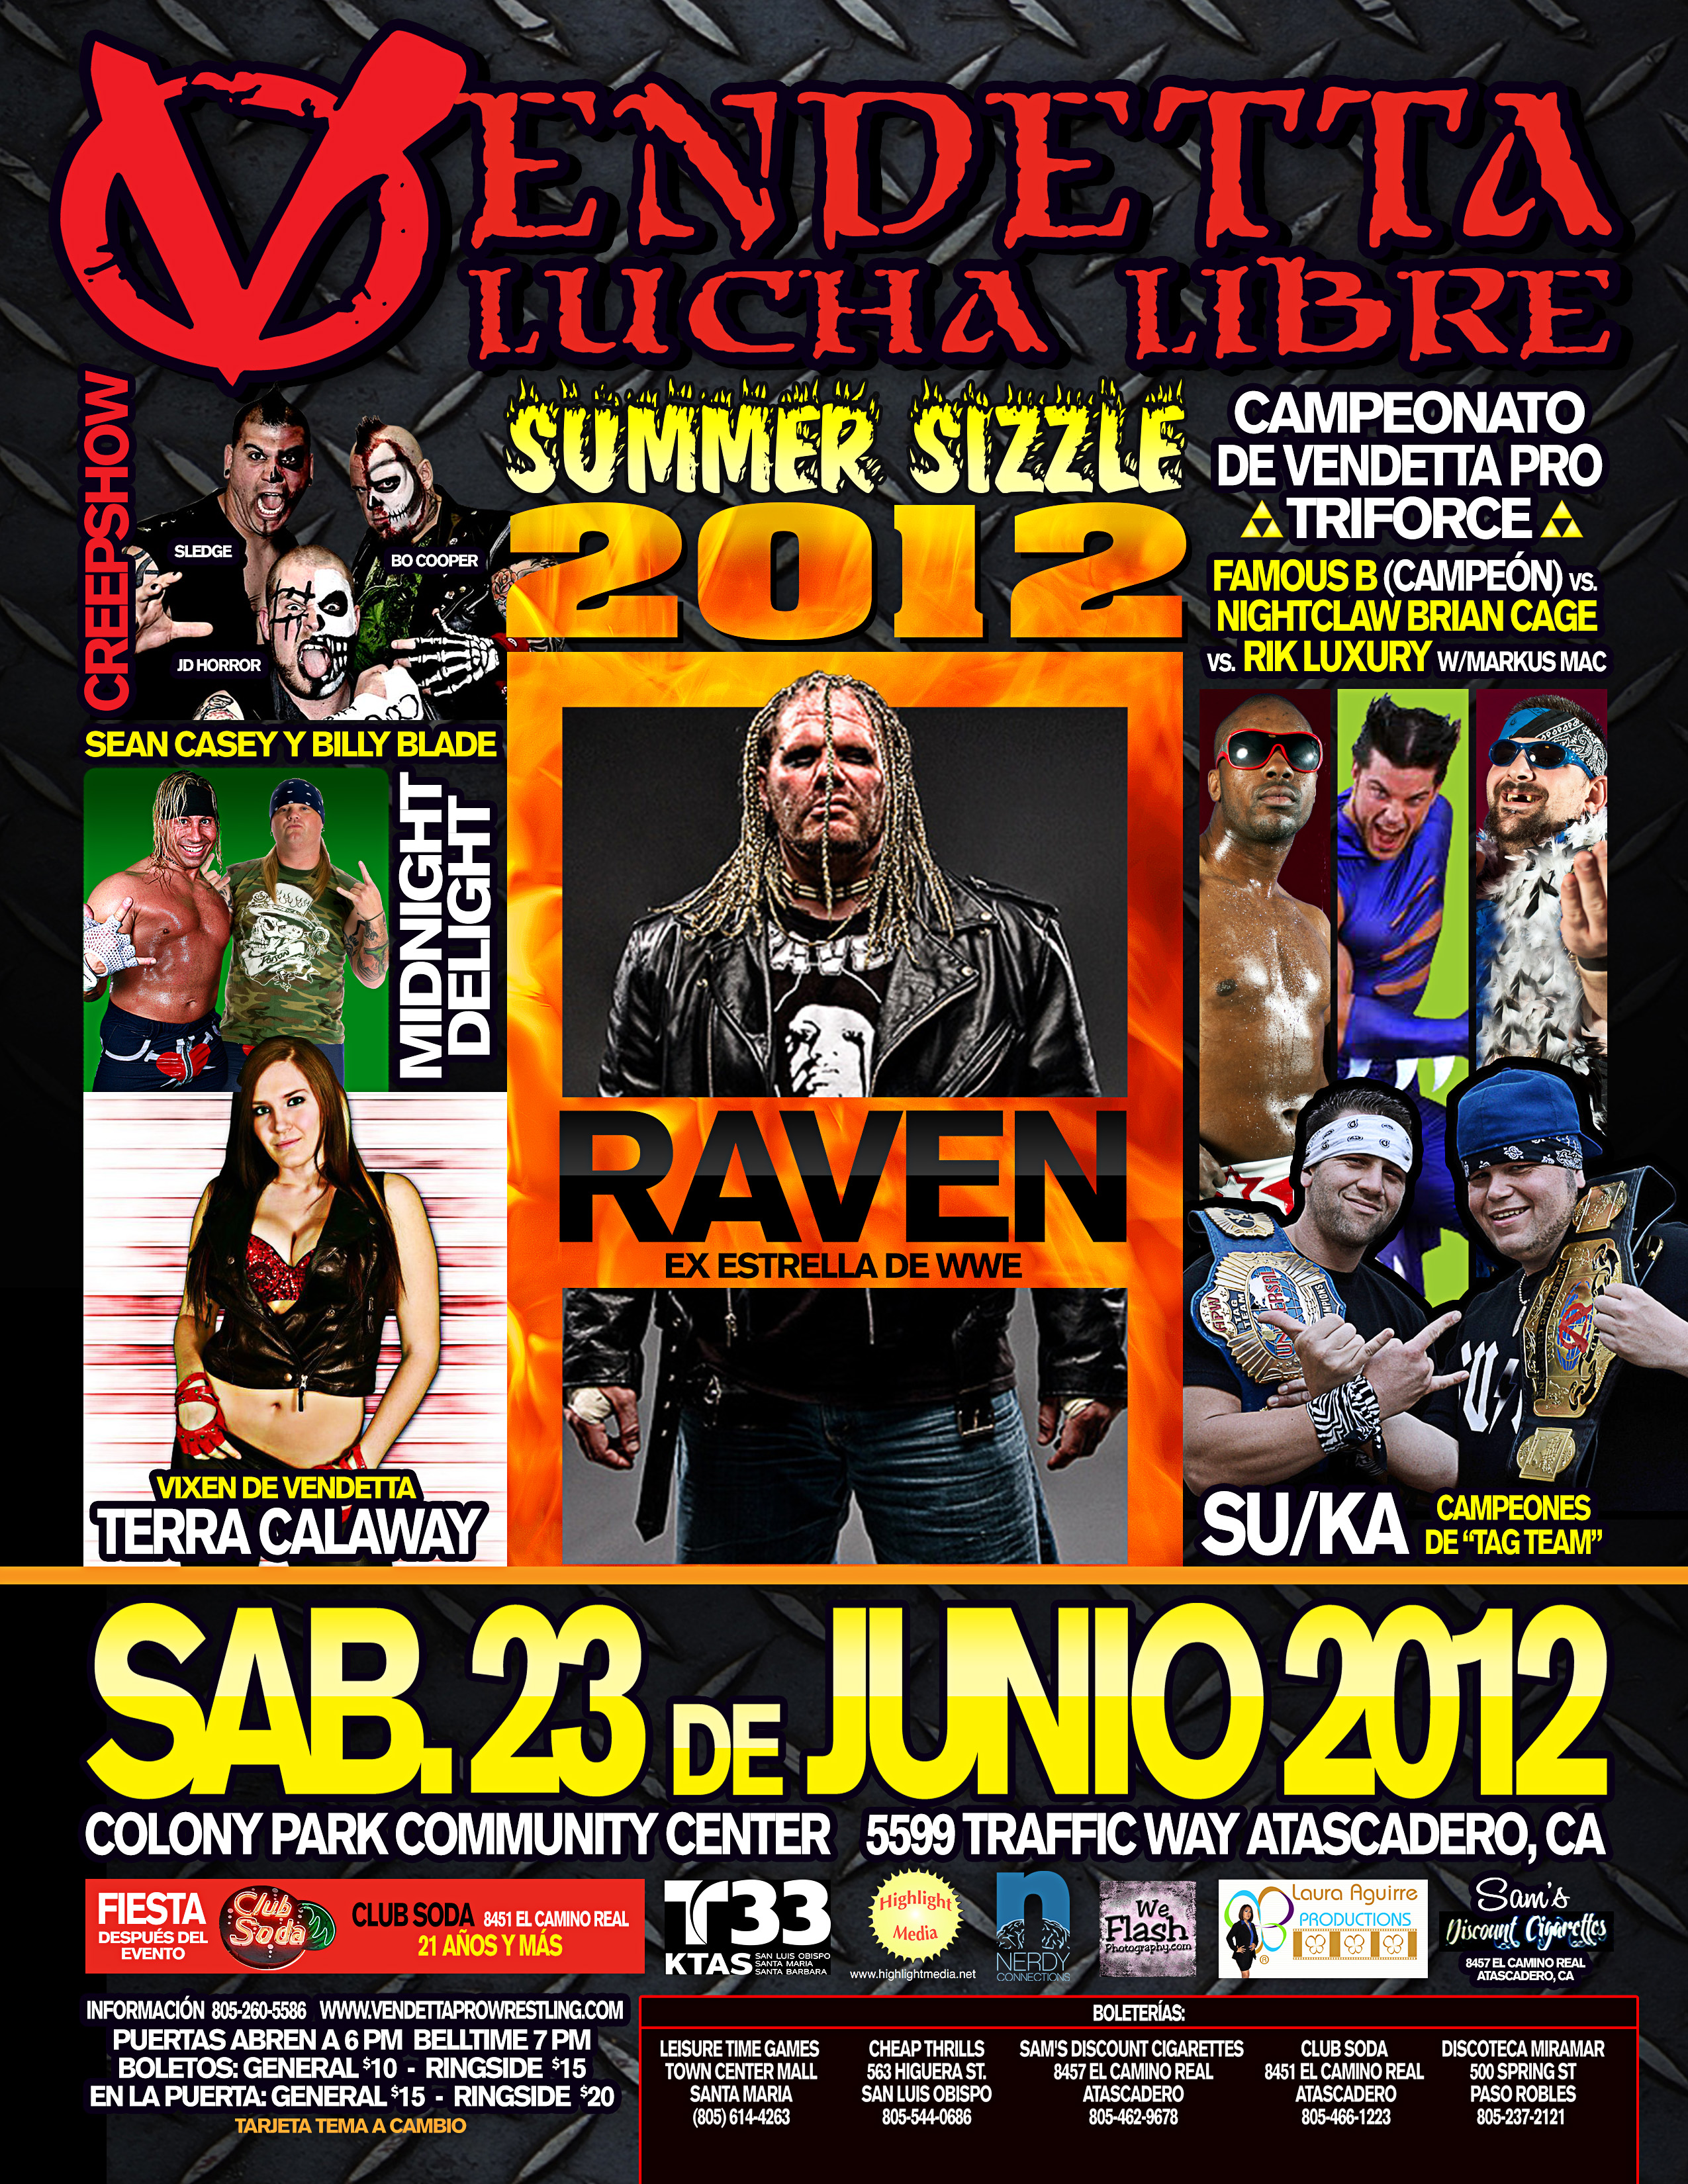 Summer Sizzle 2012 Spanish event flyer